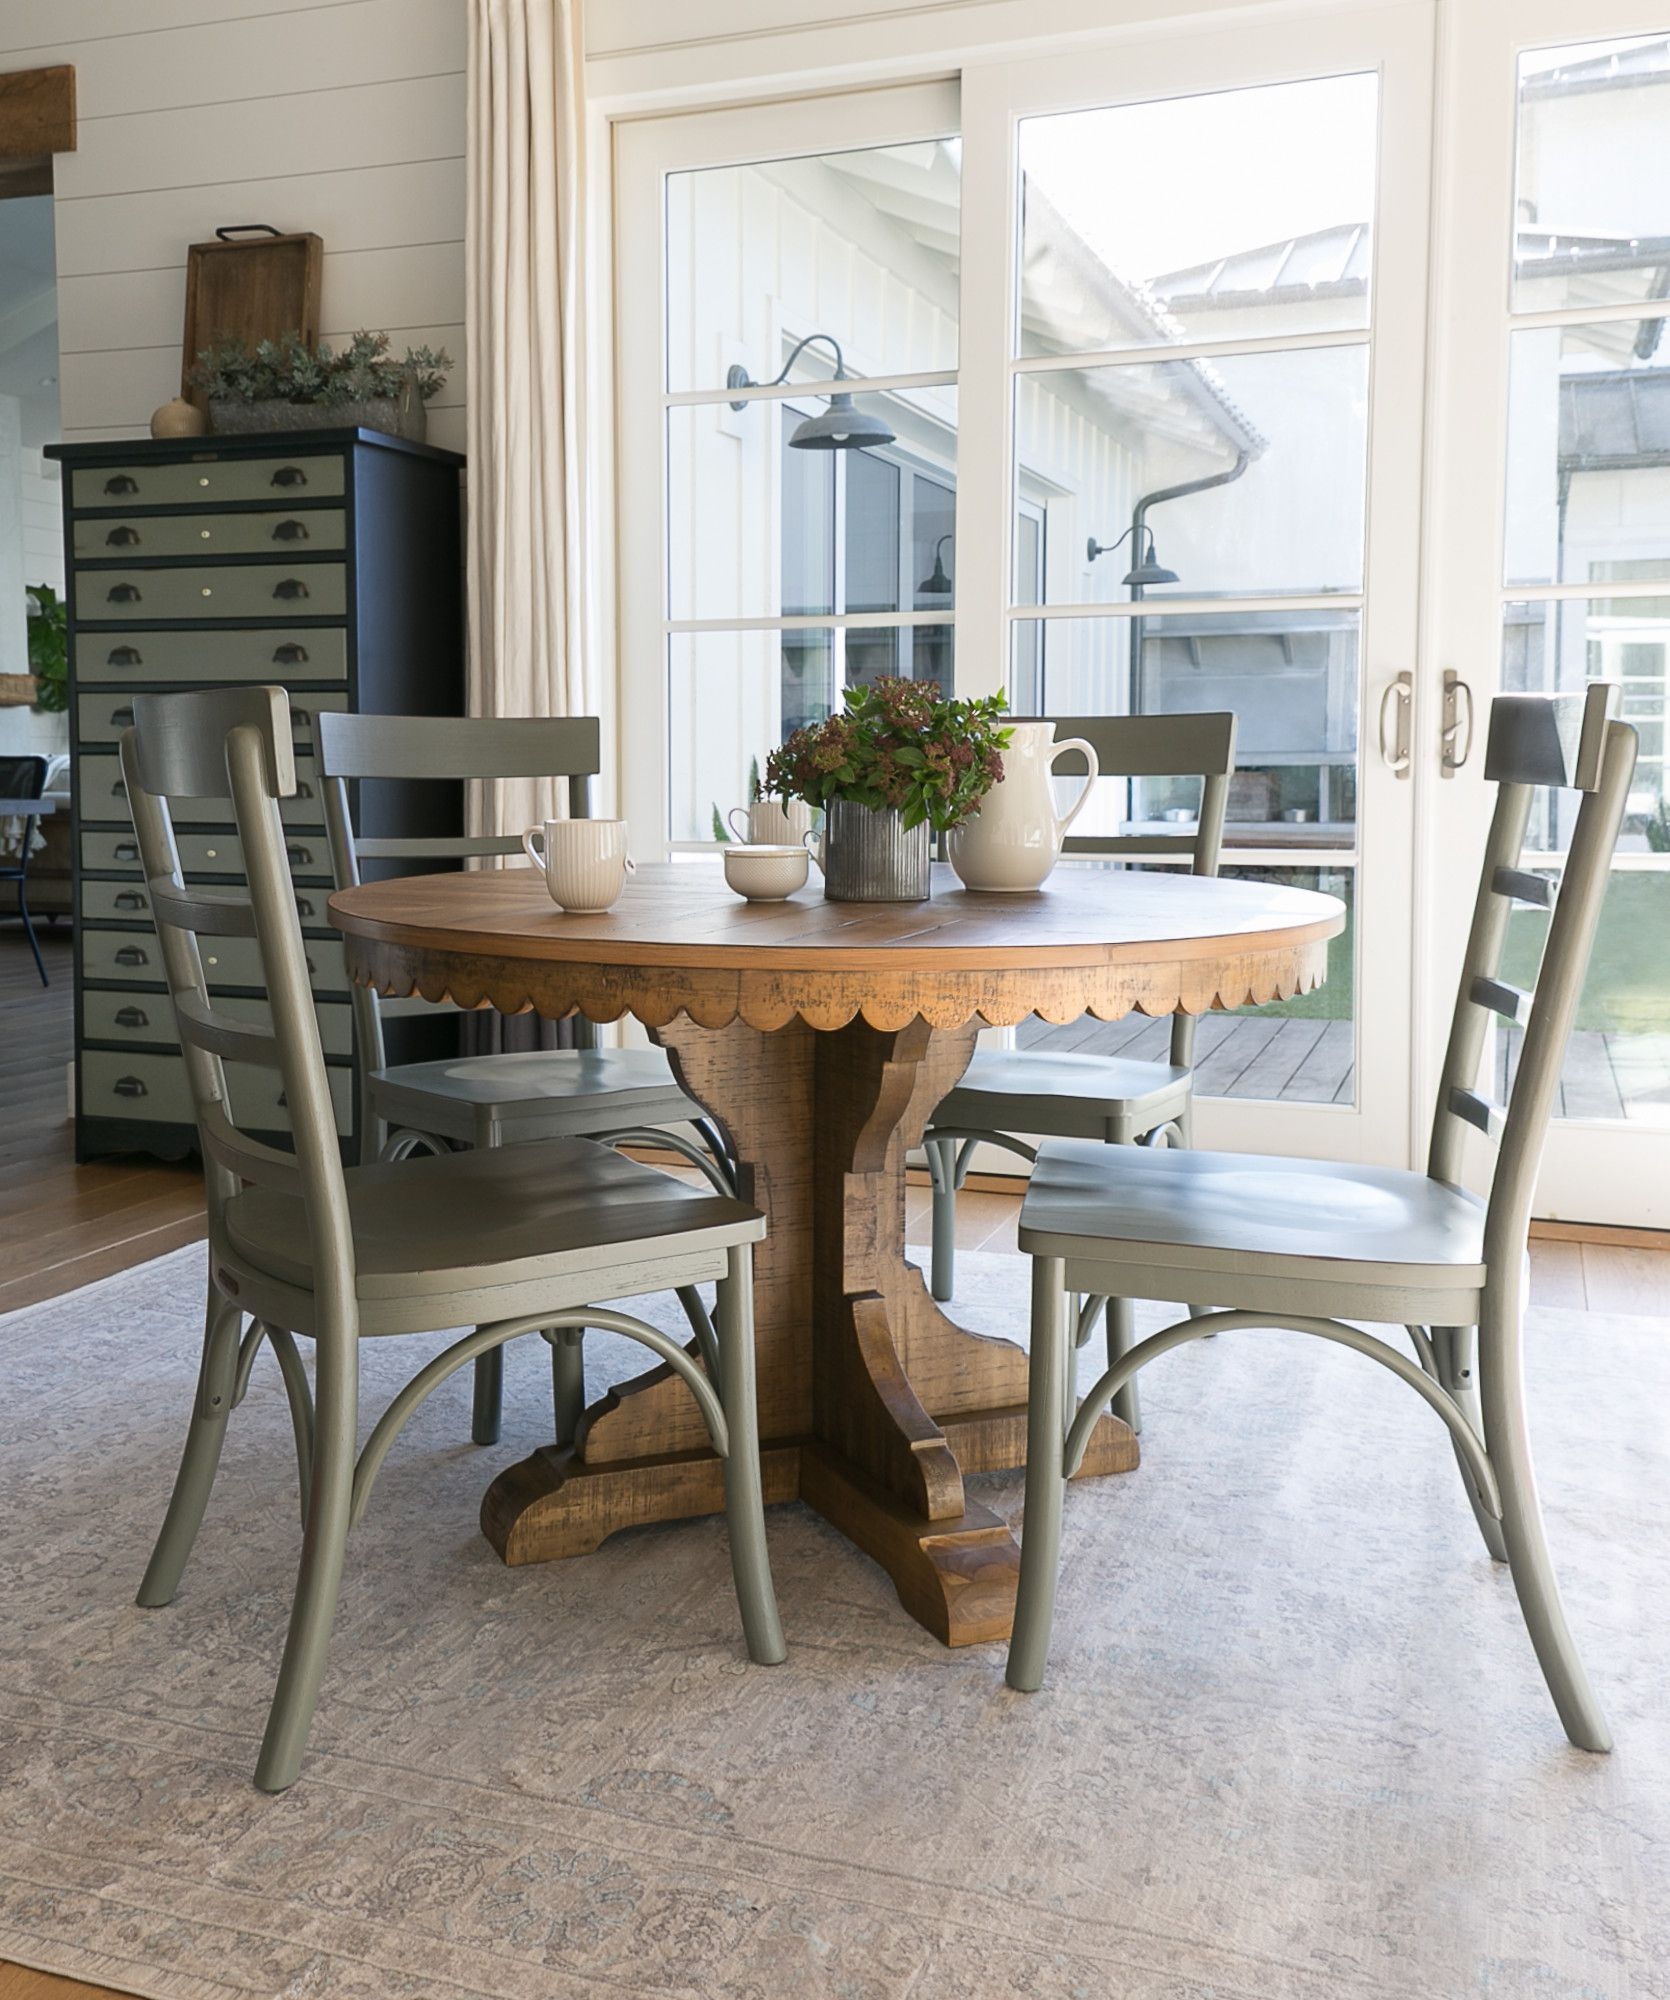 Magnolia Home Top Tier Round Dining Table By Joanna Gaines In 2020 Small Round Kitchen Table Dining Table Round Dining Table